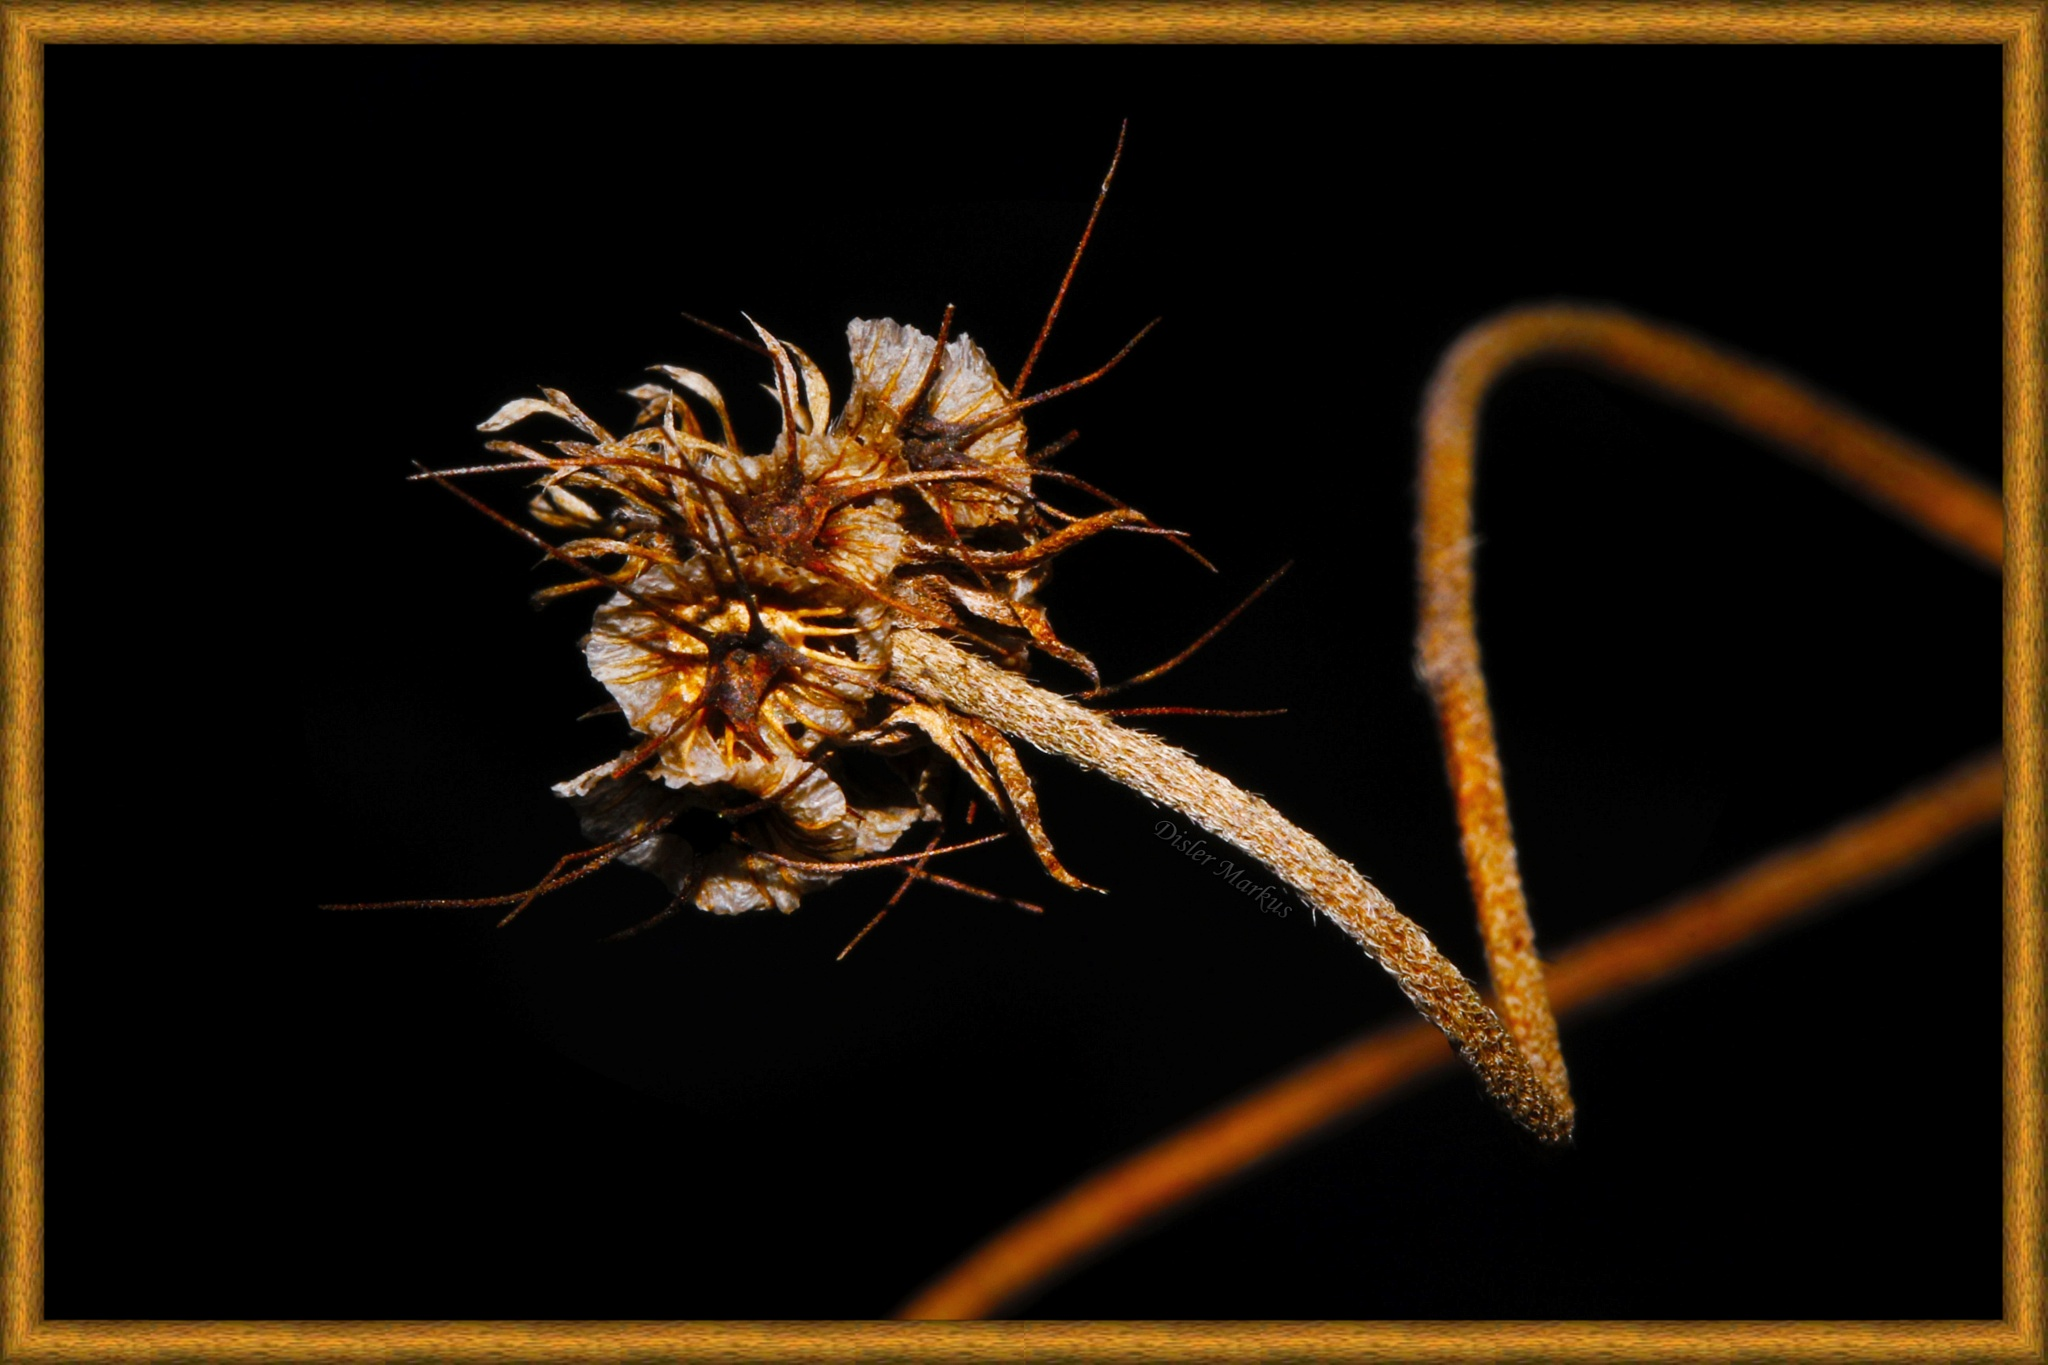 The Art of Nature. by Disler Markus